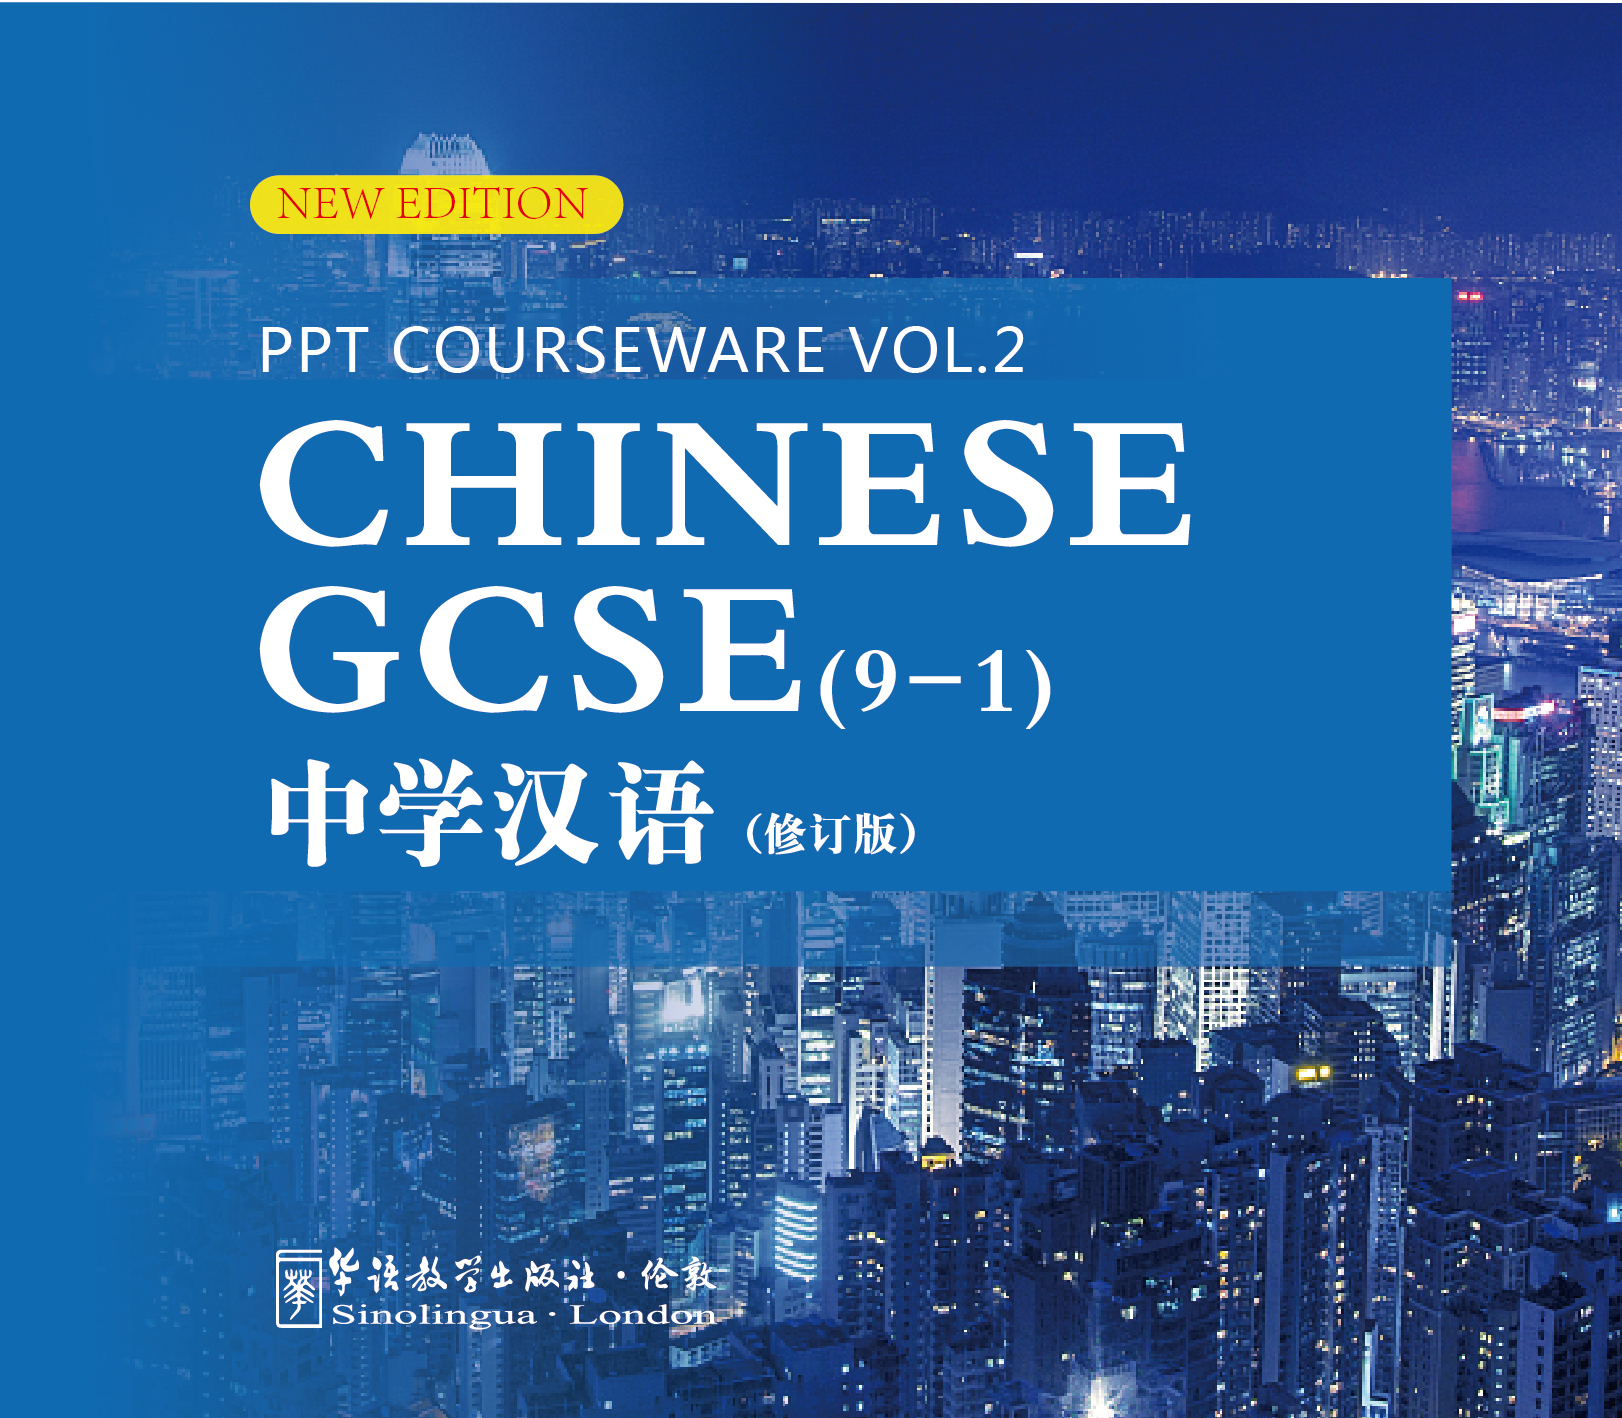 CHINESE GCSE (9-1) PPT Courseware vol.2